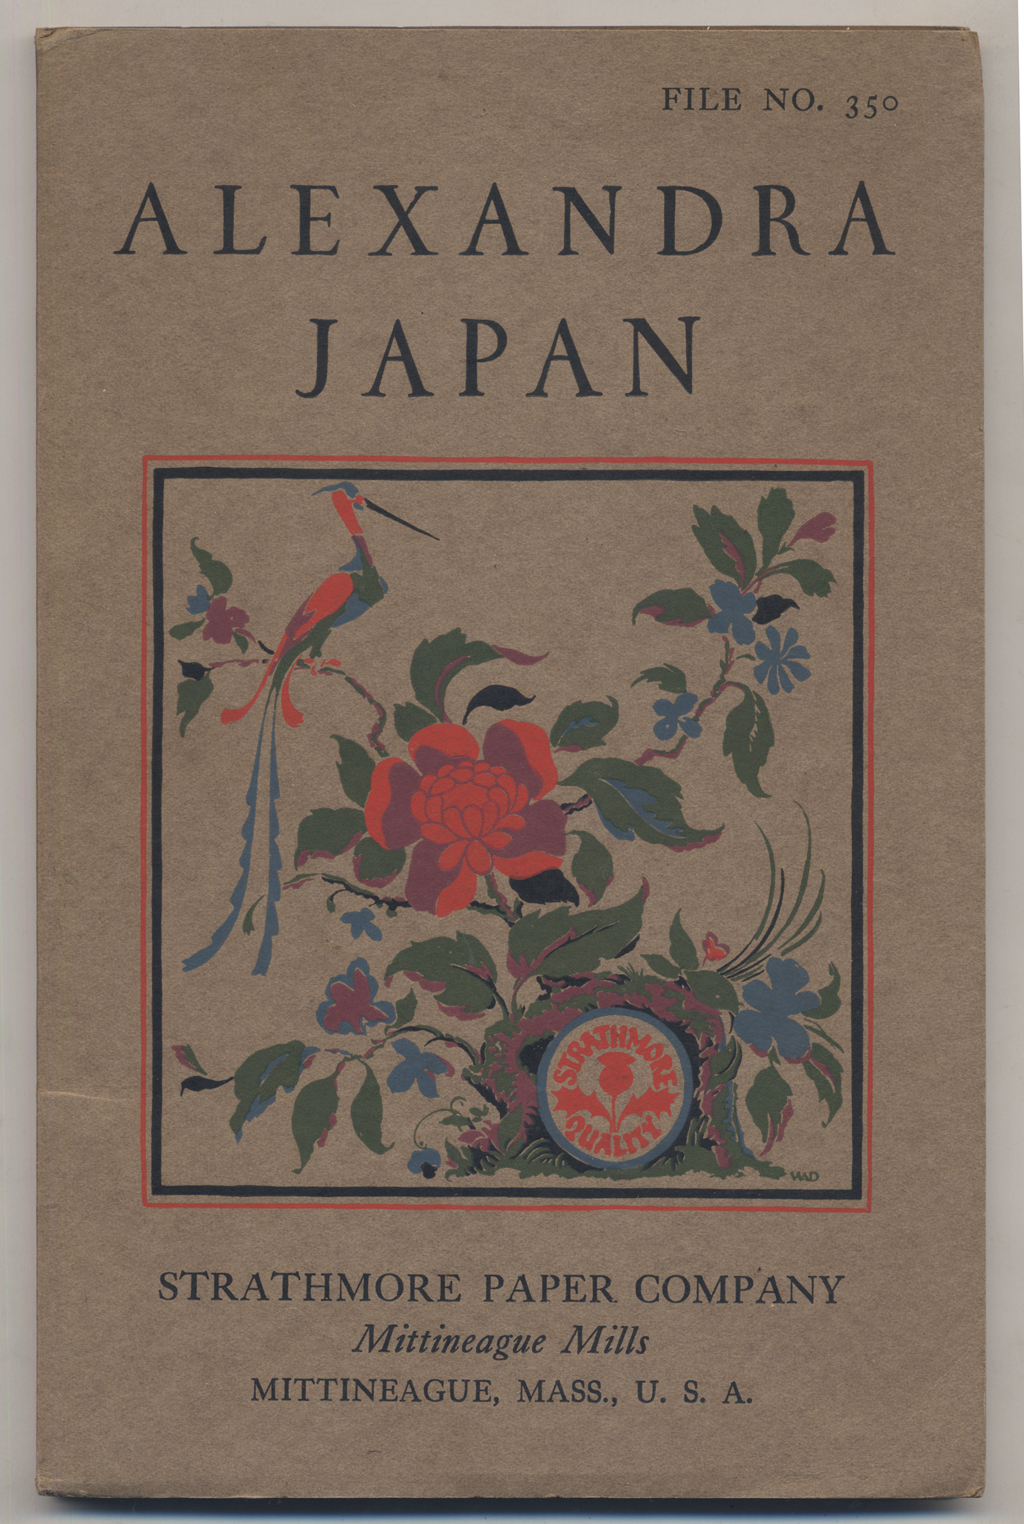 Alexandra Japan sample book (Strathmore Paper Co., 1919). Design by W.A. Dwiggins.